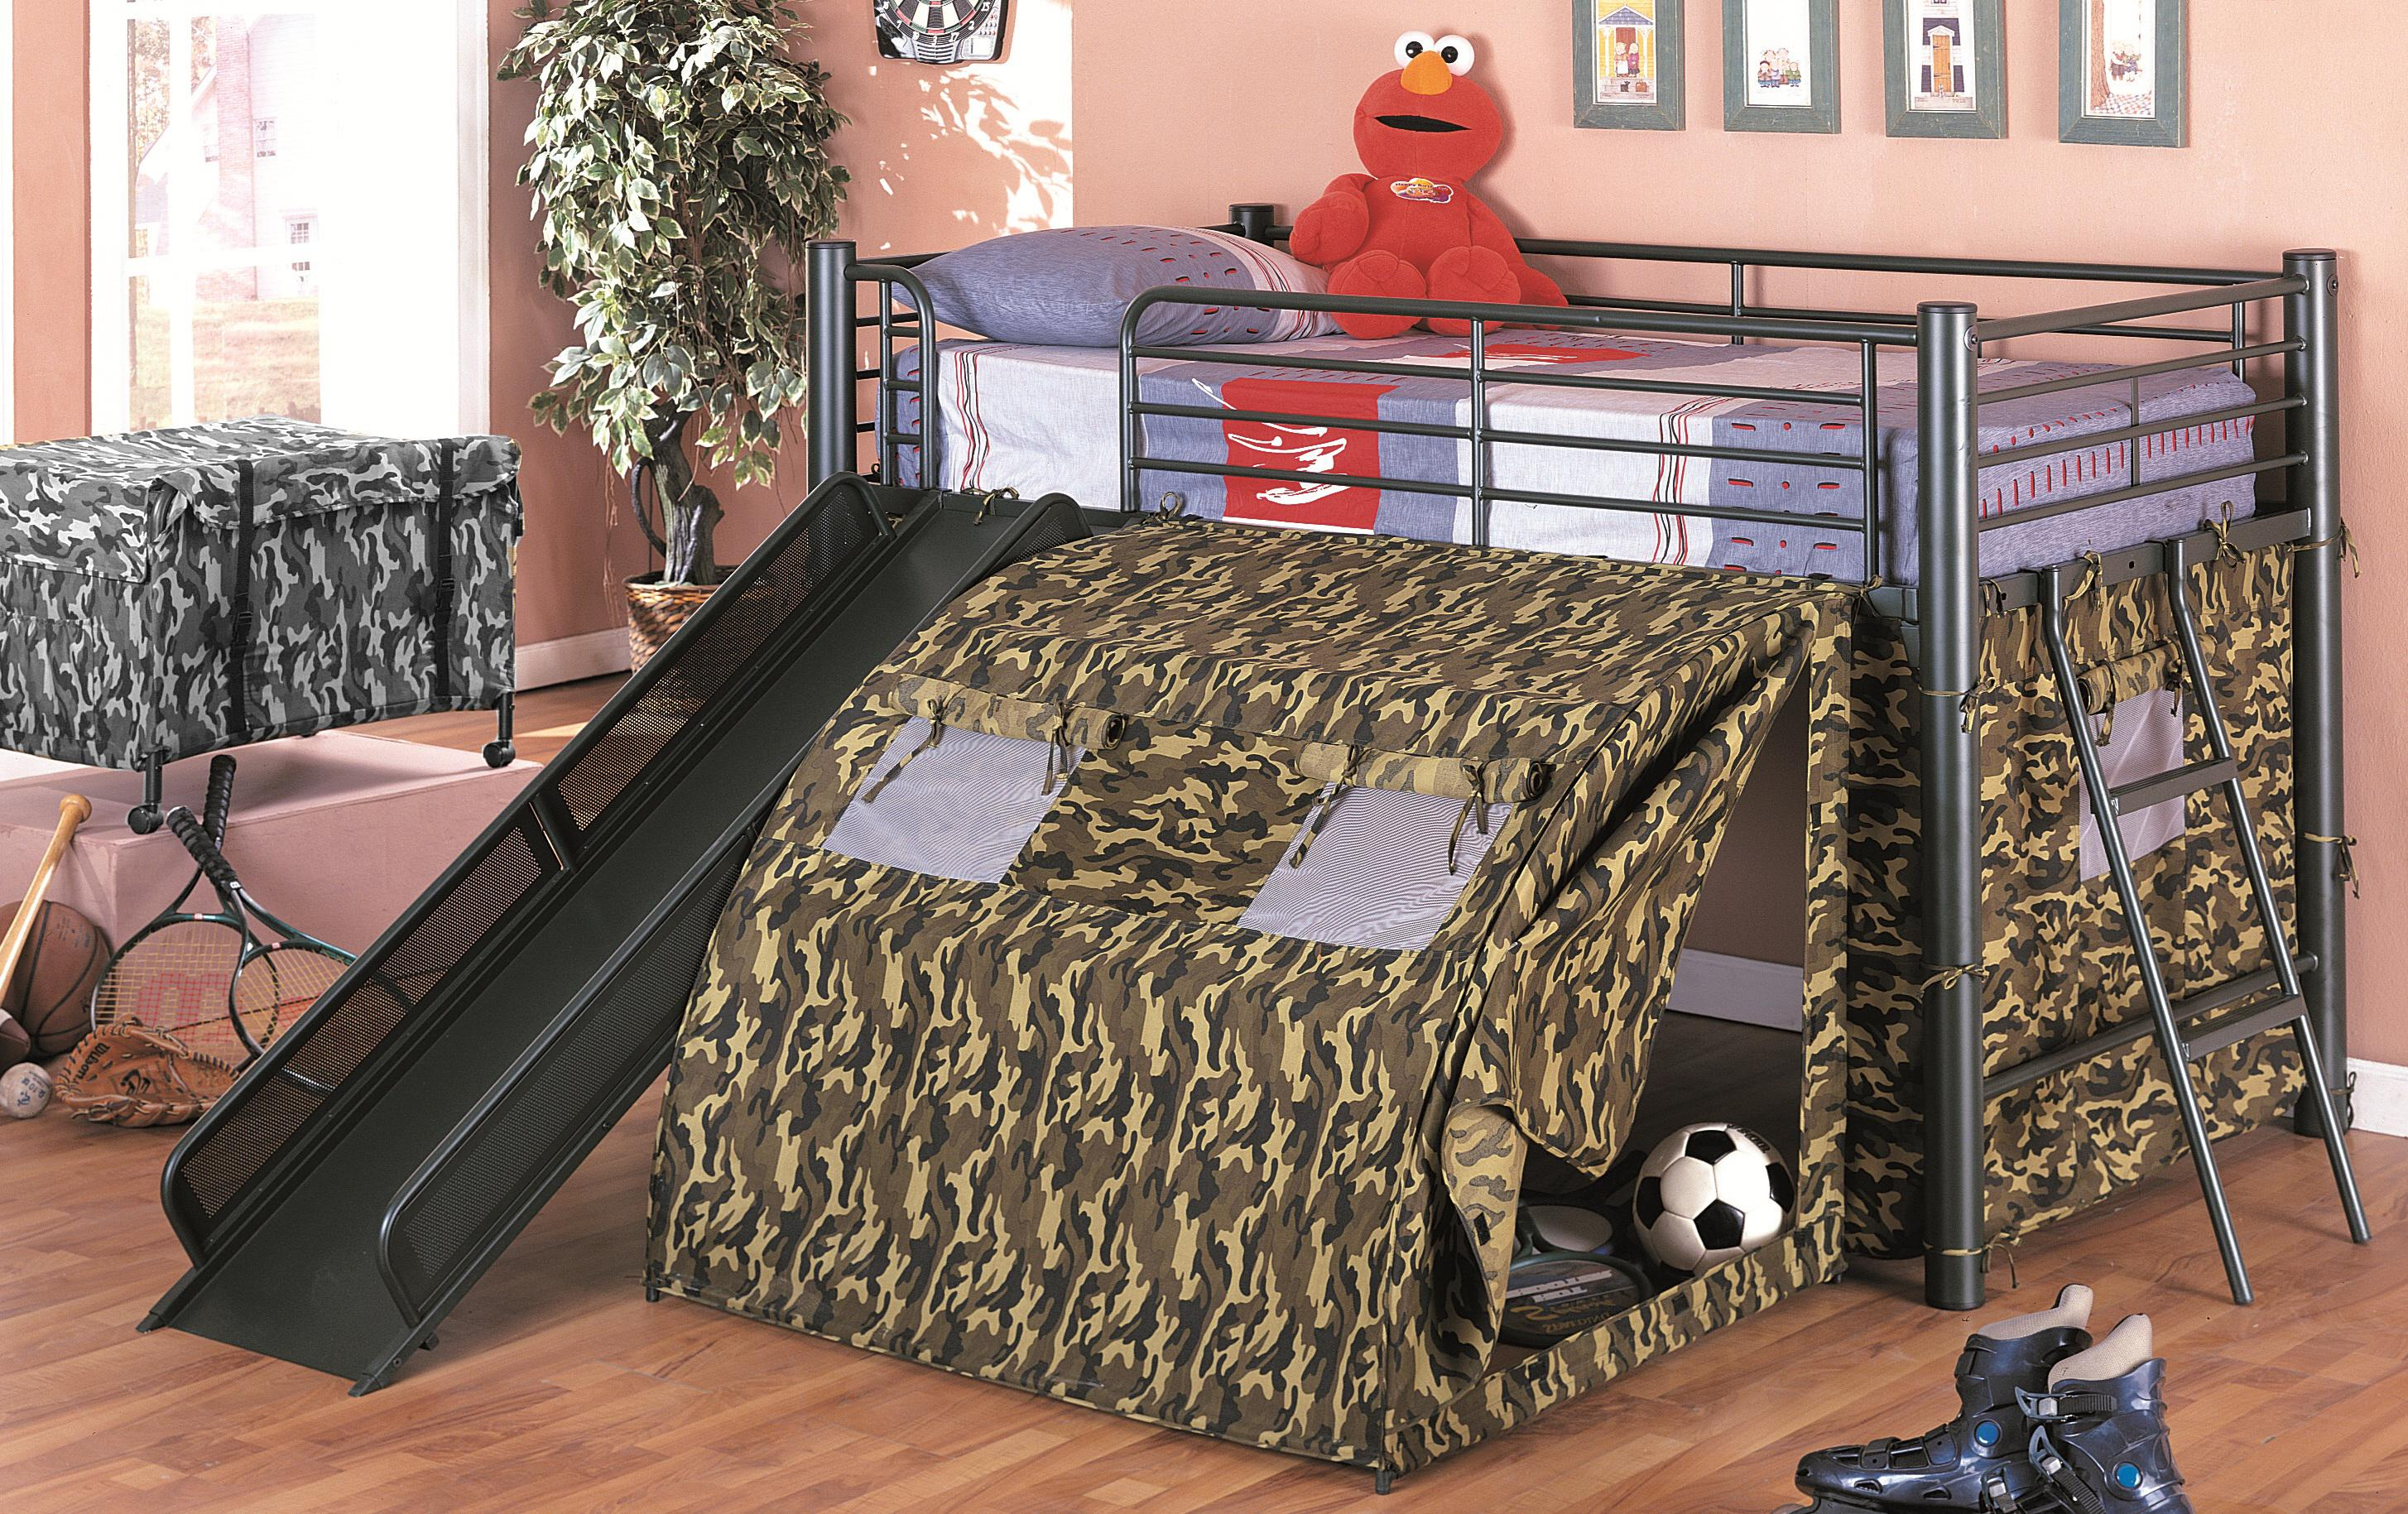 G.I. Bunk Bed with Slide and Tent - [WH-7470] & G.I. Bunk Bed with Slide and Tent | OJCommerce